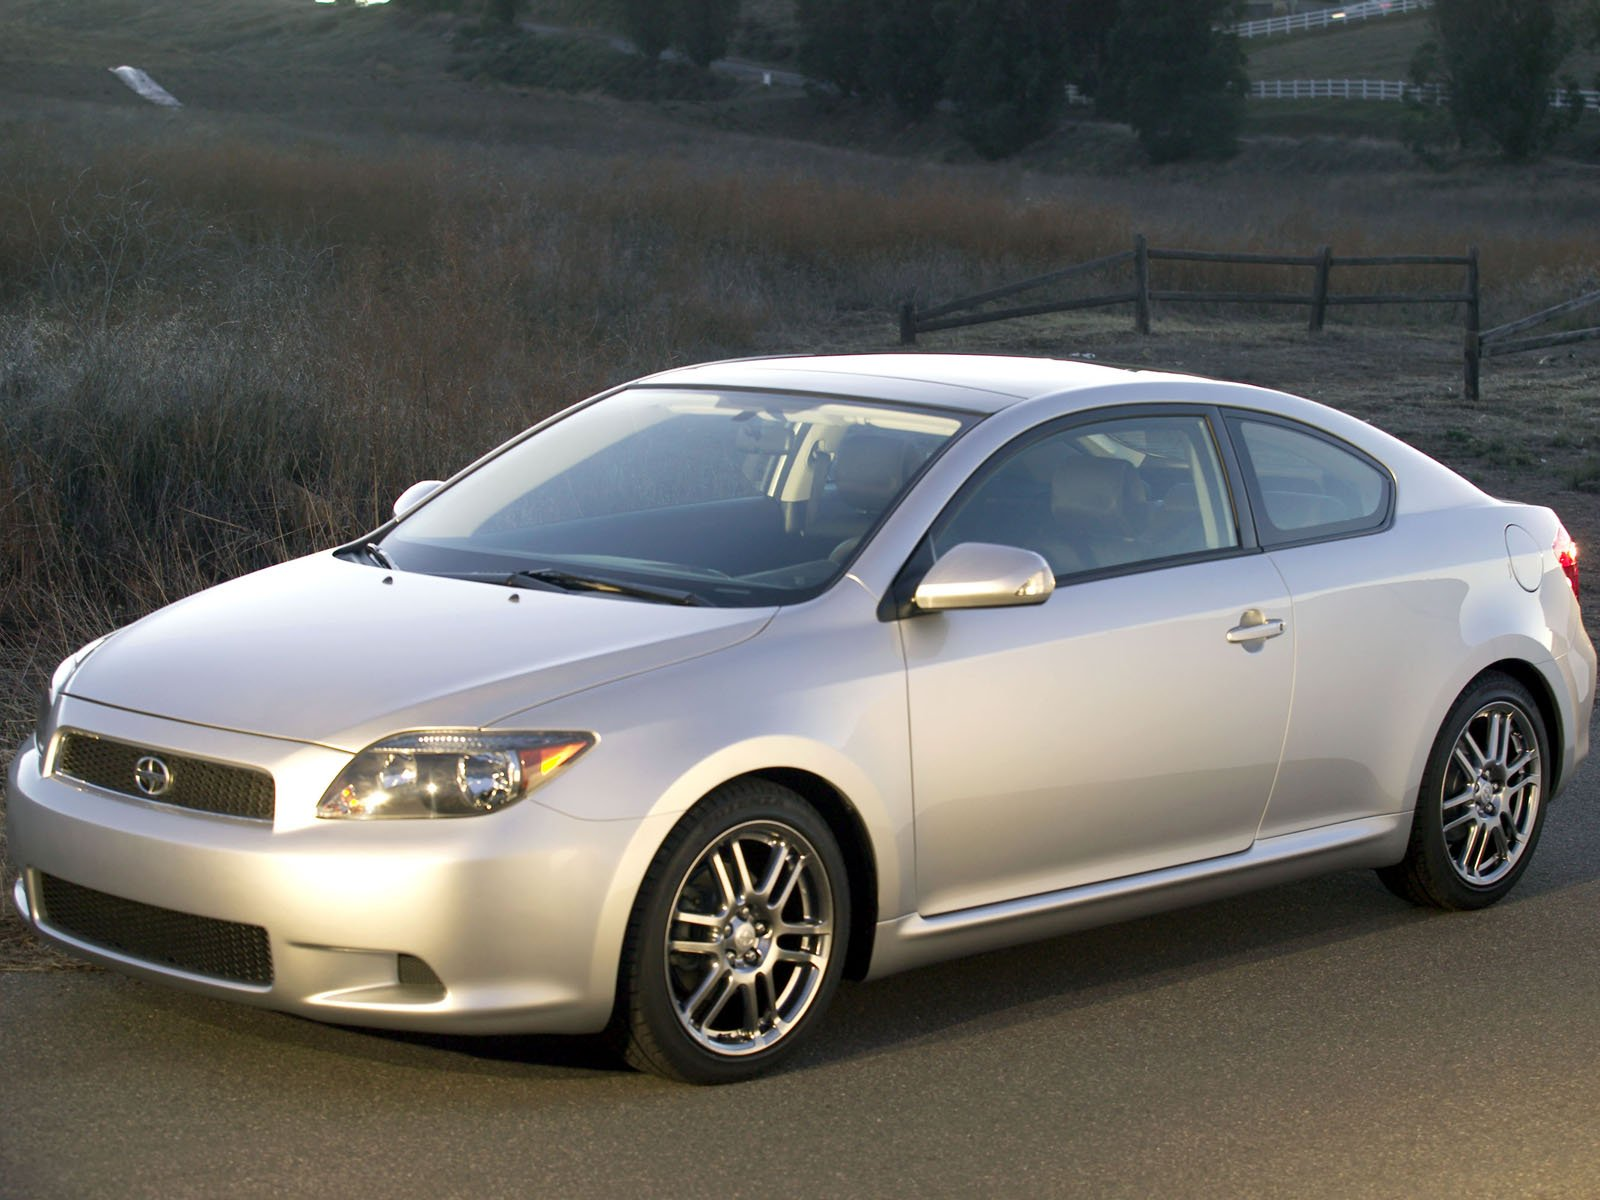 Scion tC photo 8140